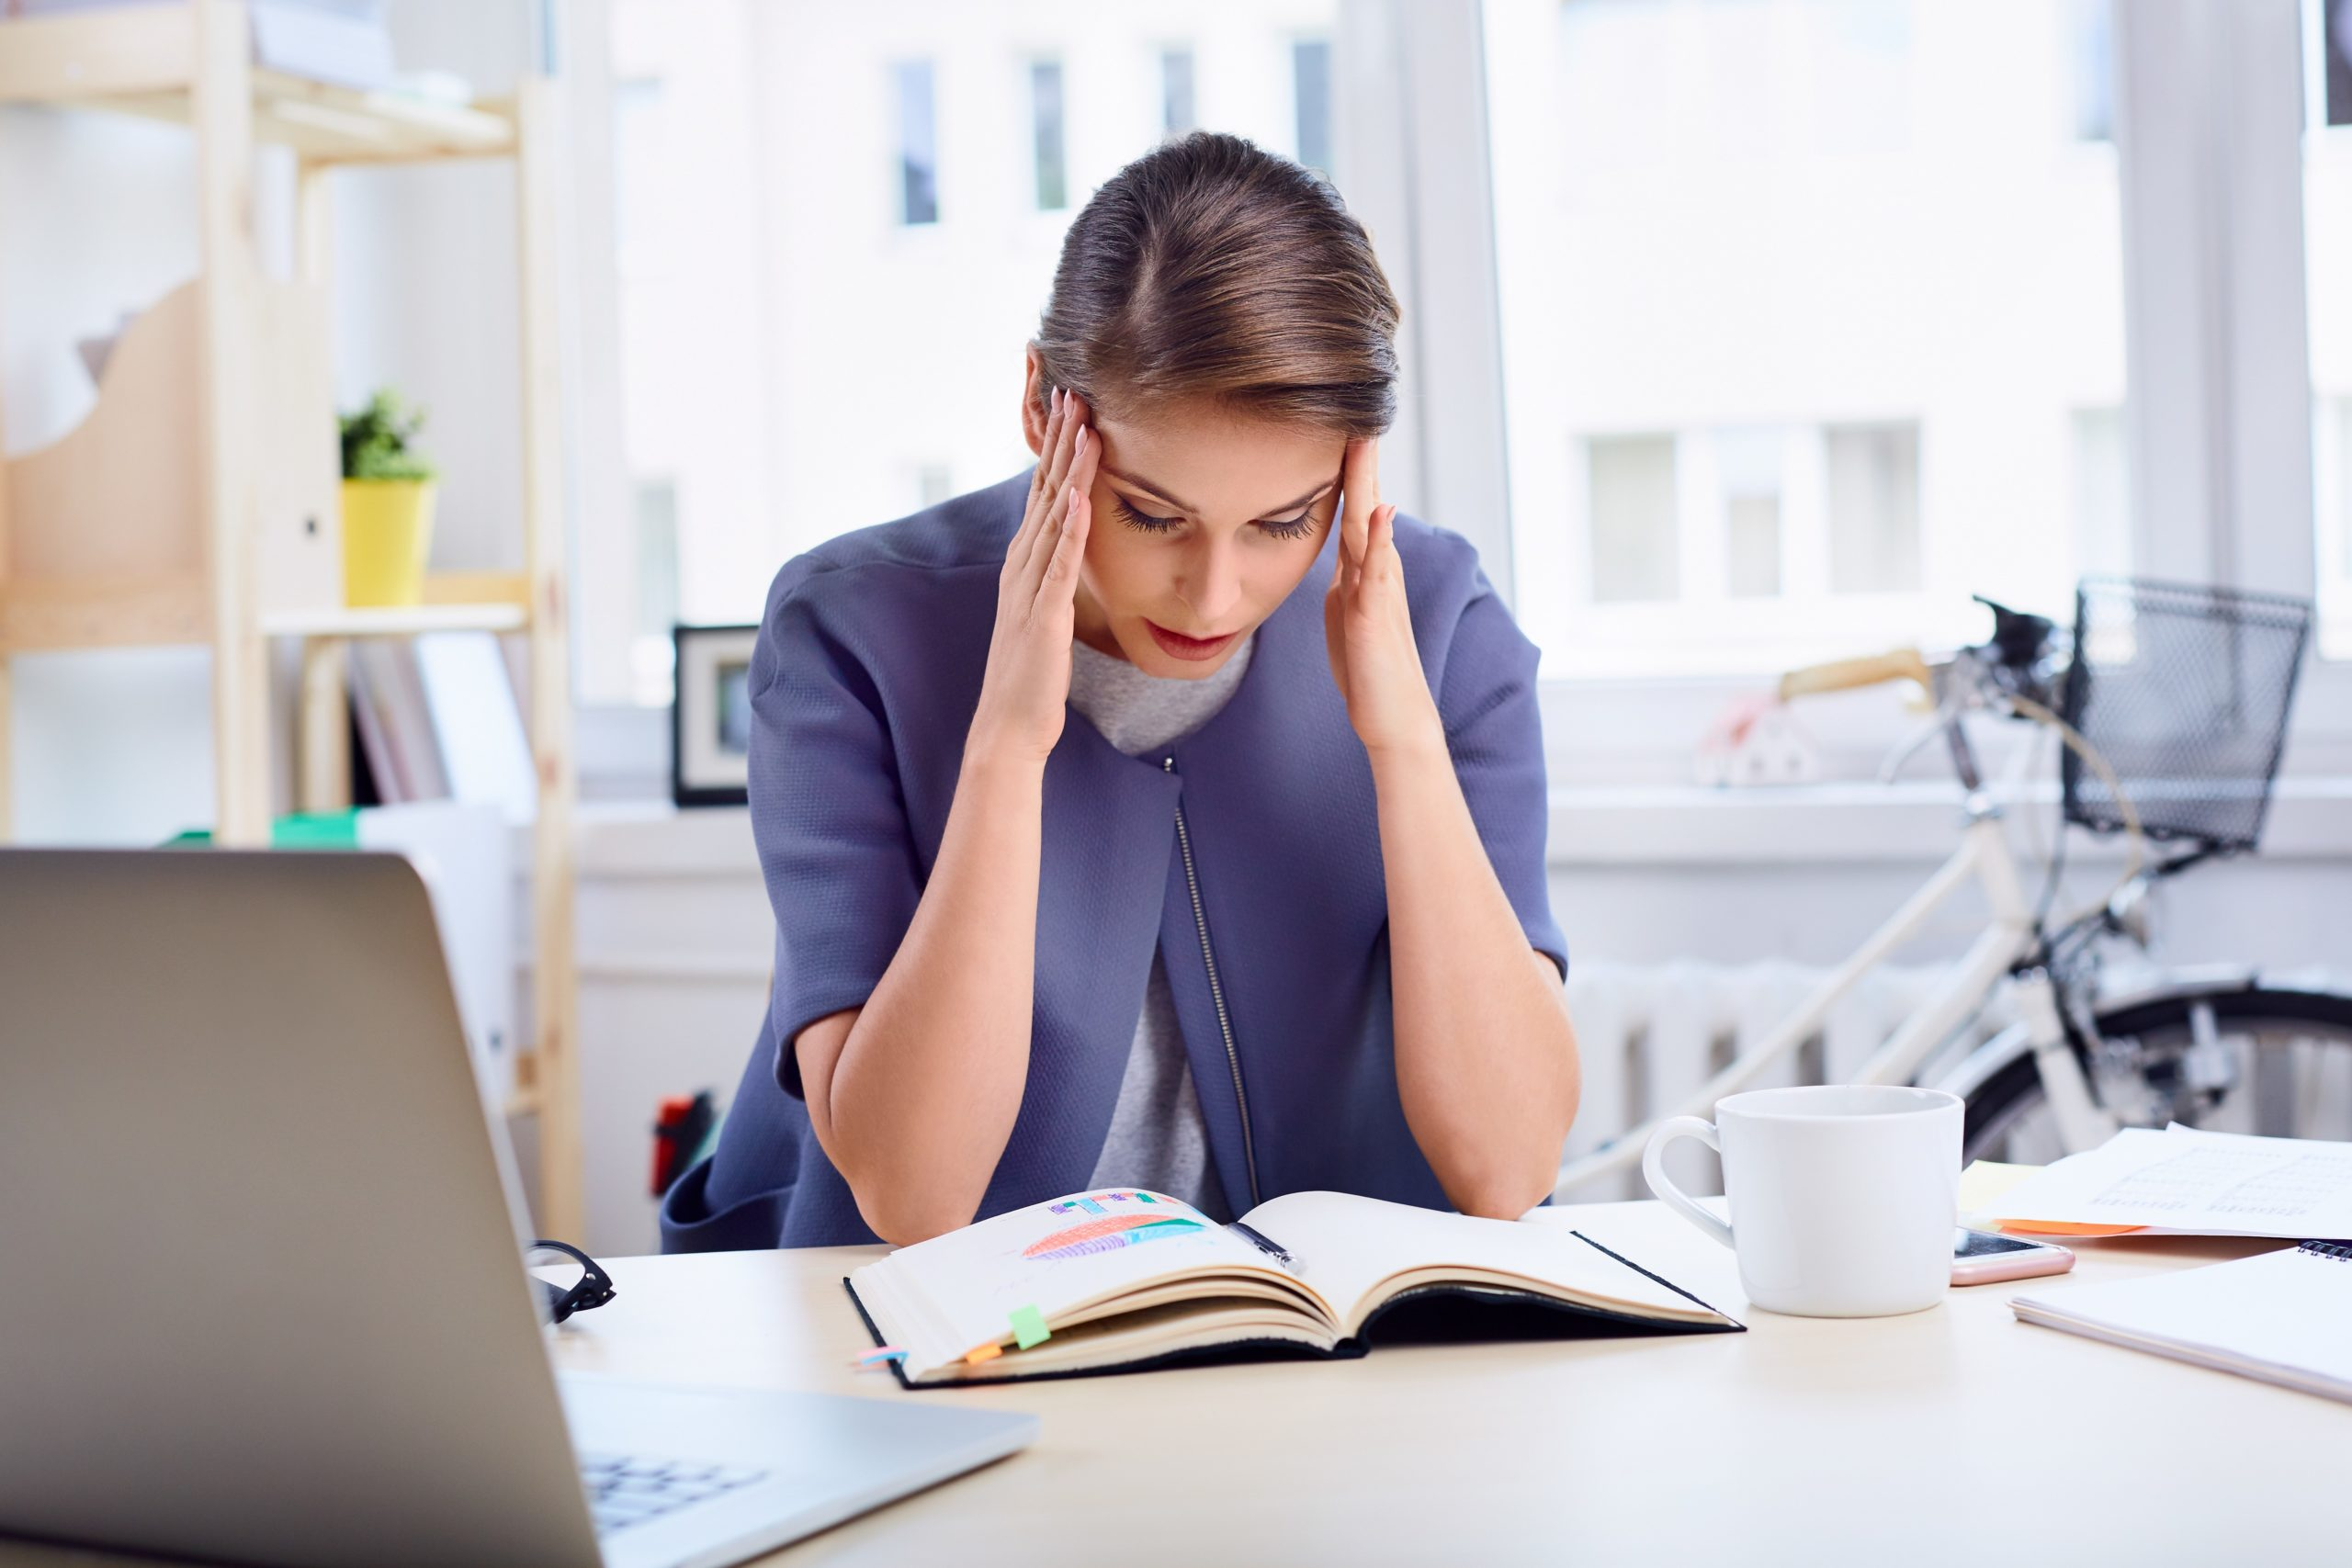 One third of freelancers say IR35 changes affecting their mental health